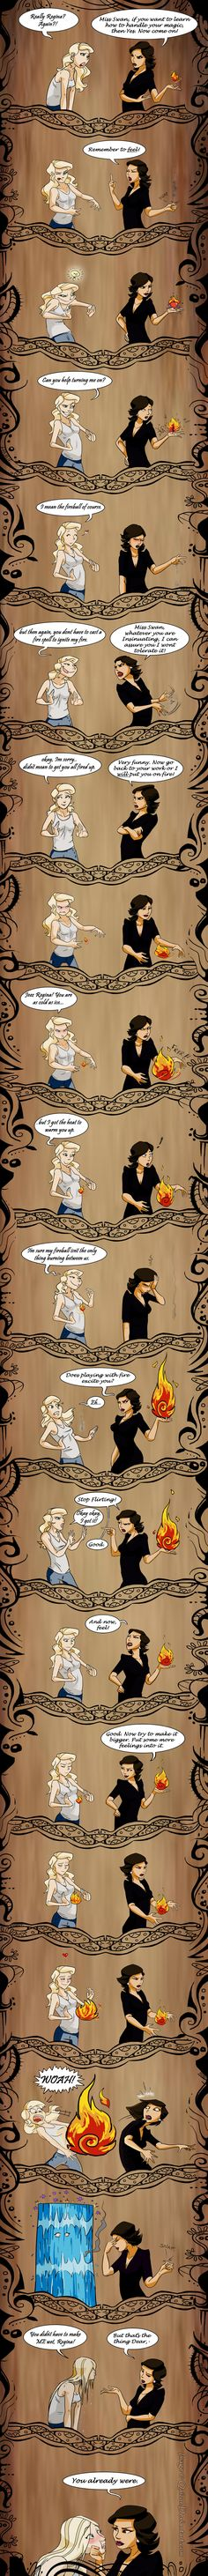 Girl, you are on FIRE! by Qaizor on deviantART I'm not a swan queen shipper, but it's cute...